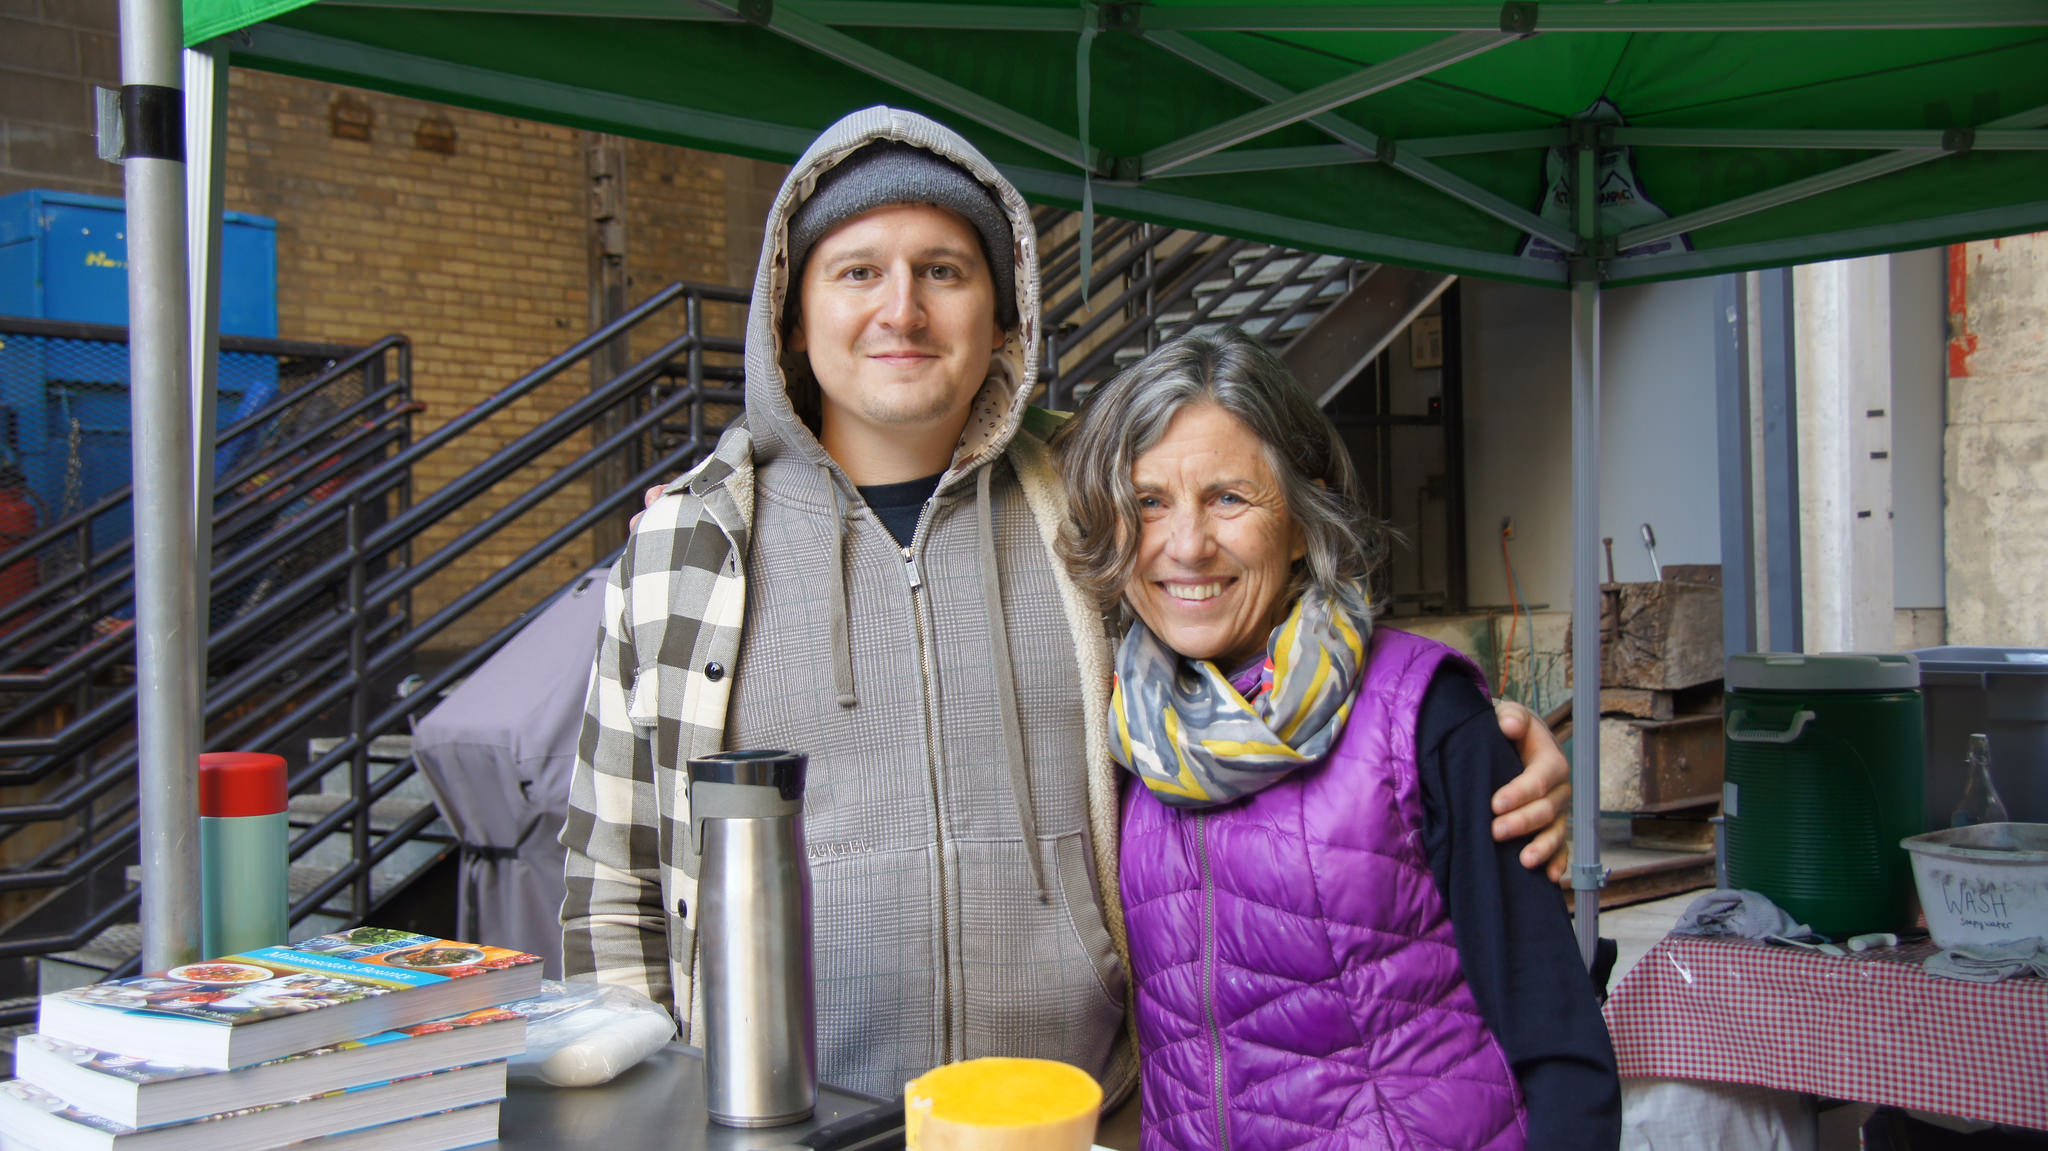 Andrew Ikeda and Beth Dooley Guest Chef 2016